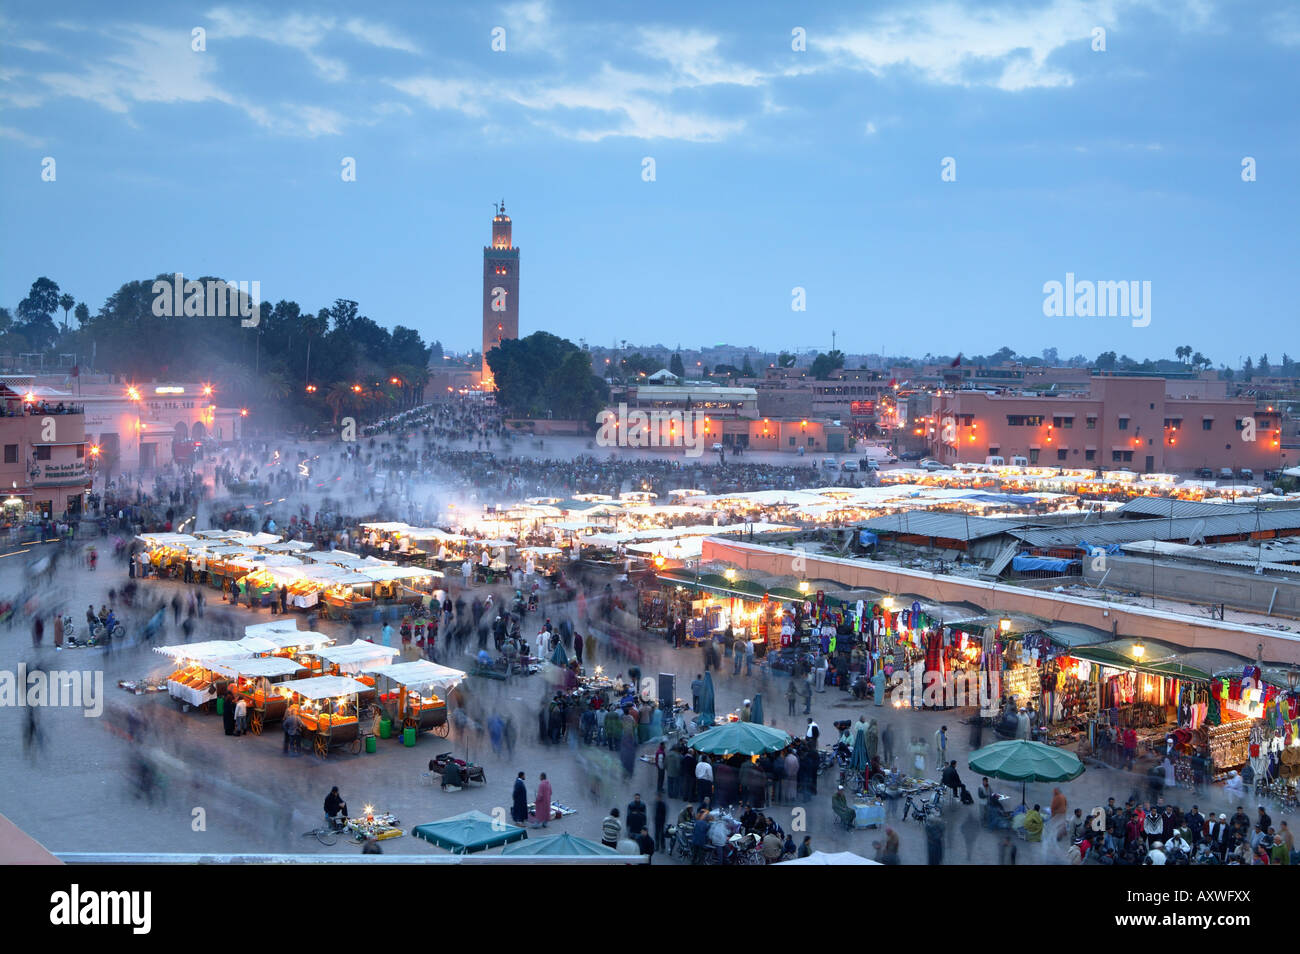 Djemma el Fna square and Koutoubia Mosque at dusk, Marrakech, Morrocco, North Africa, Africa - Stock Image